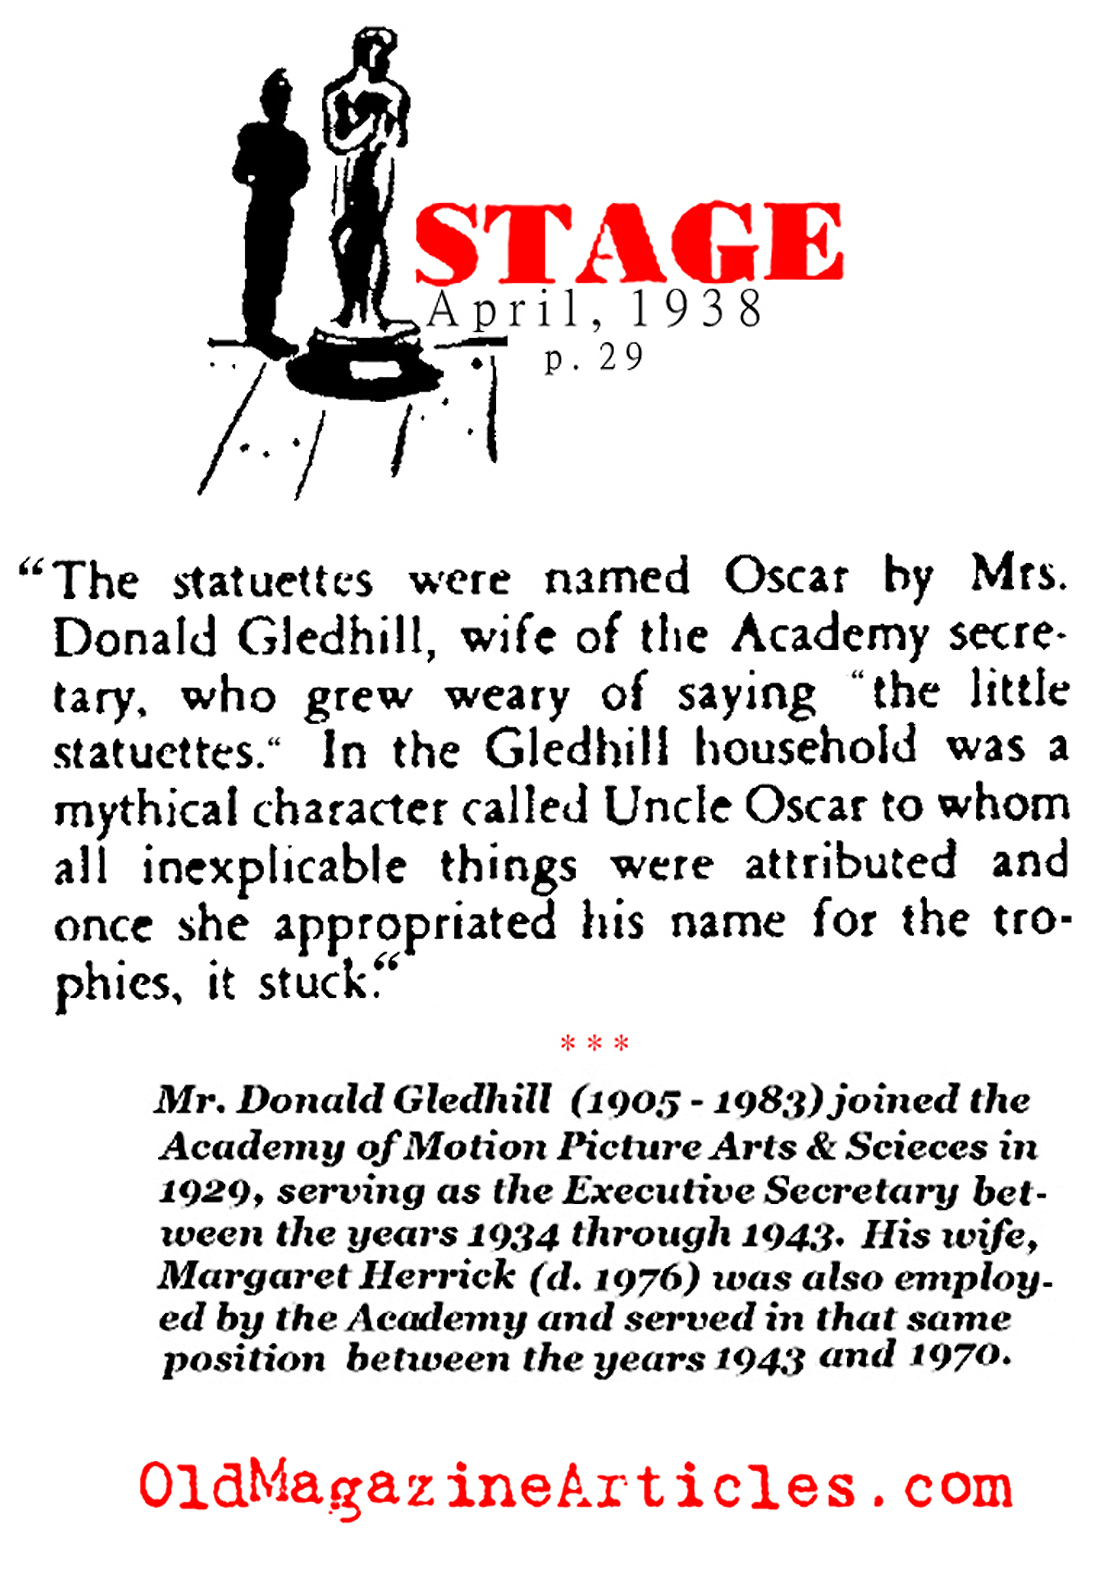 How the Academy Award Got Nicknamed 'Oscar' (Stage Magazine, 1938)